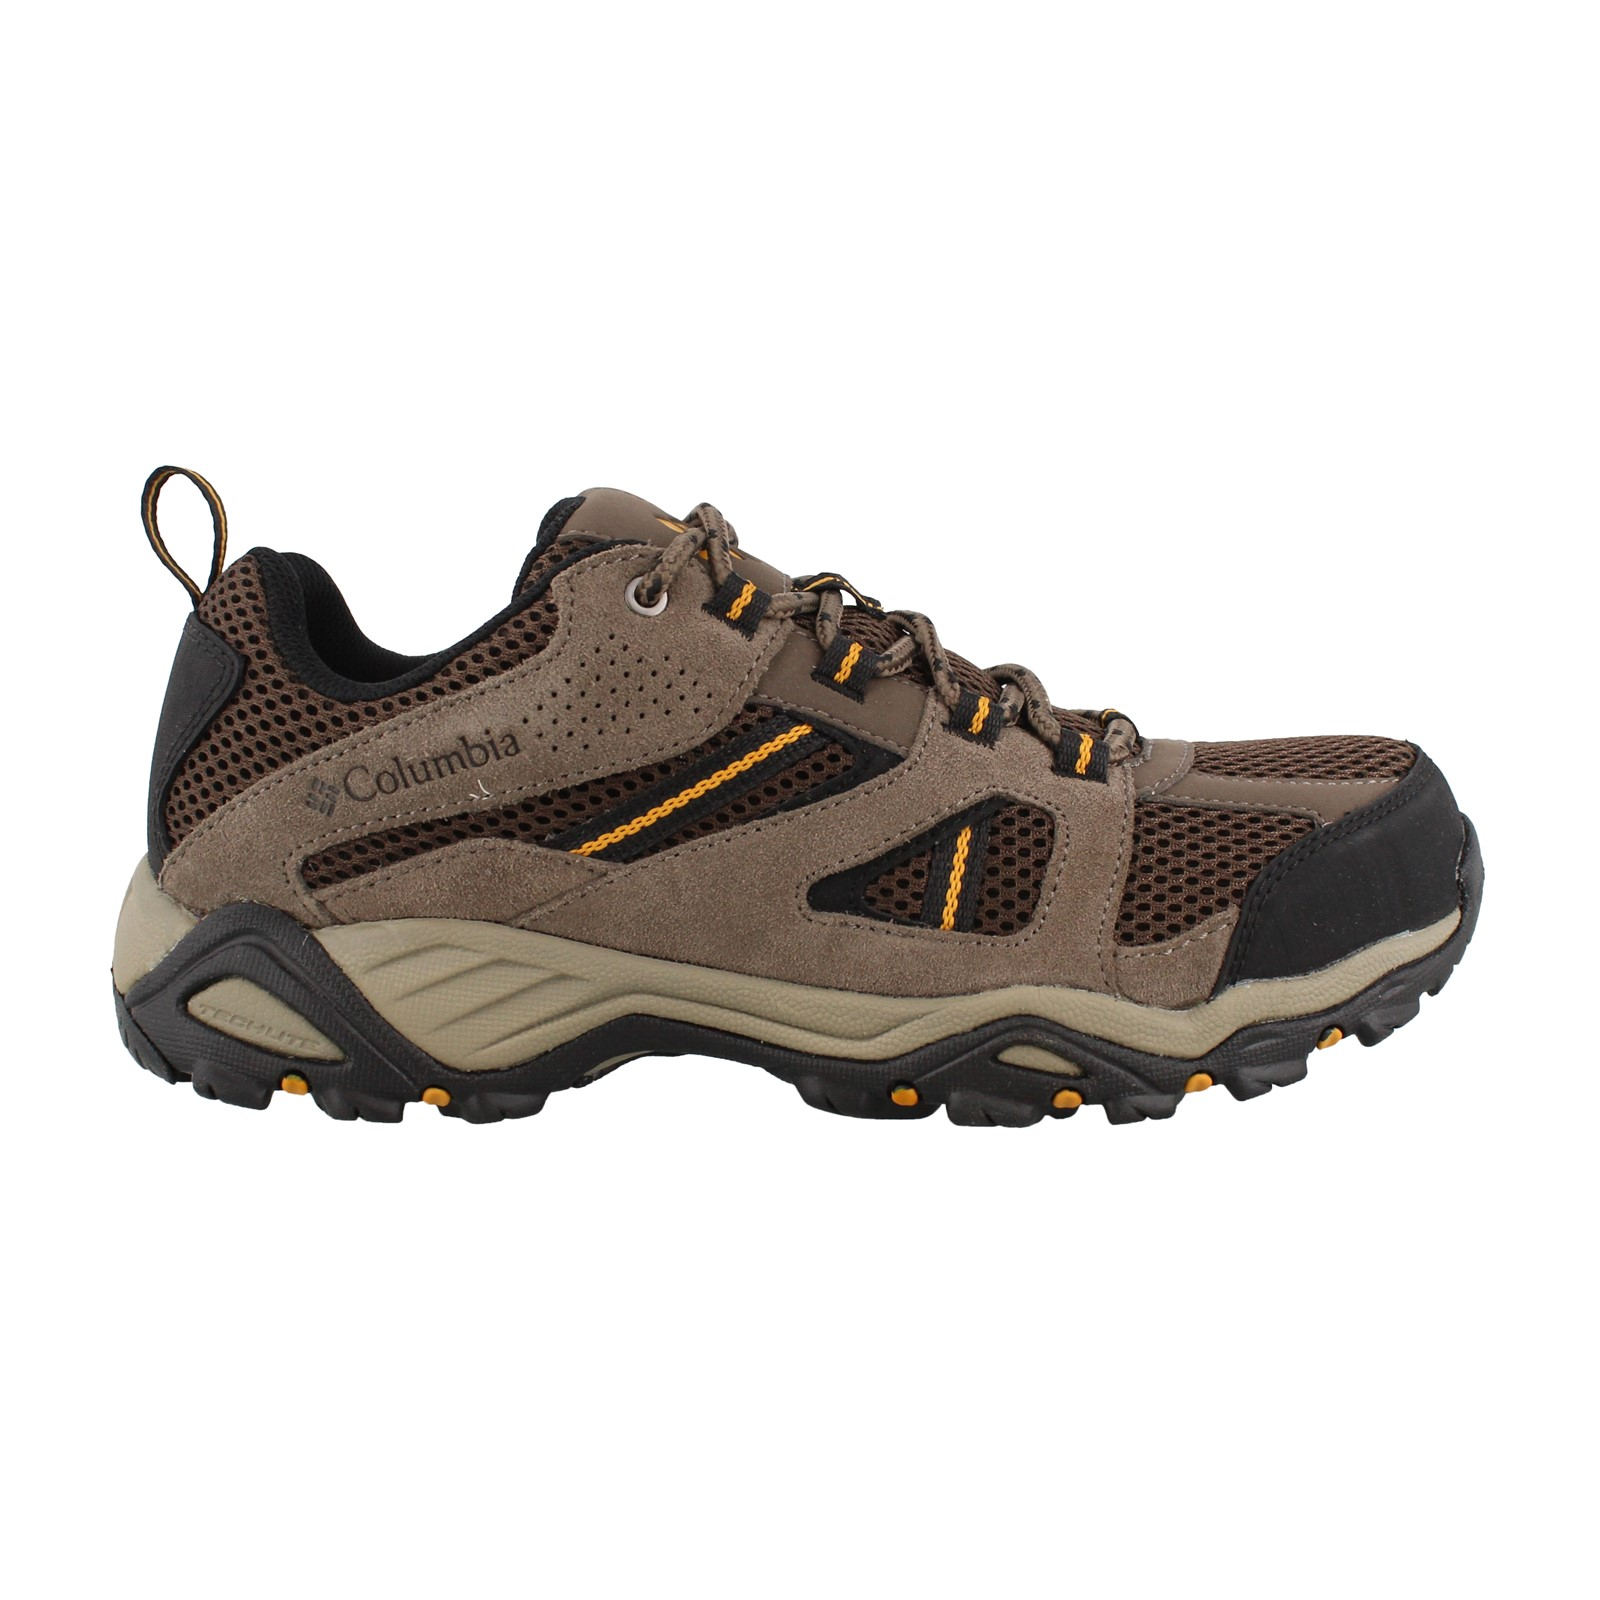 Men's Columbia, Hammond Hiking Sneakers Wide Width